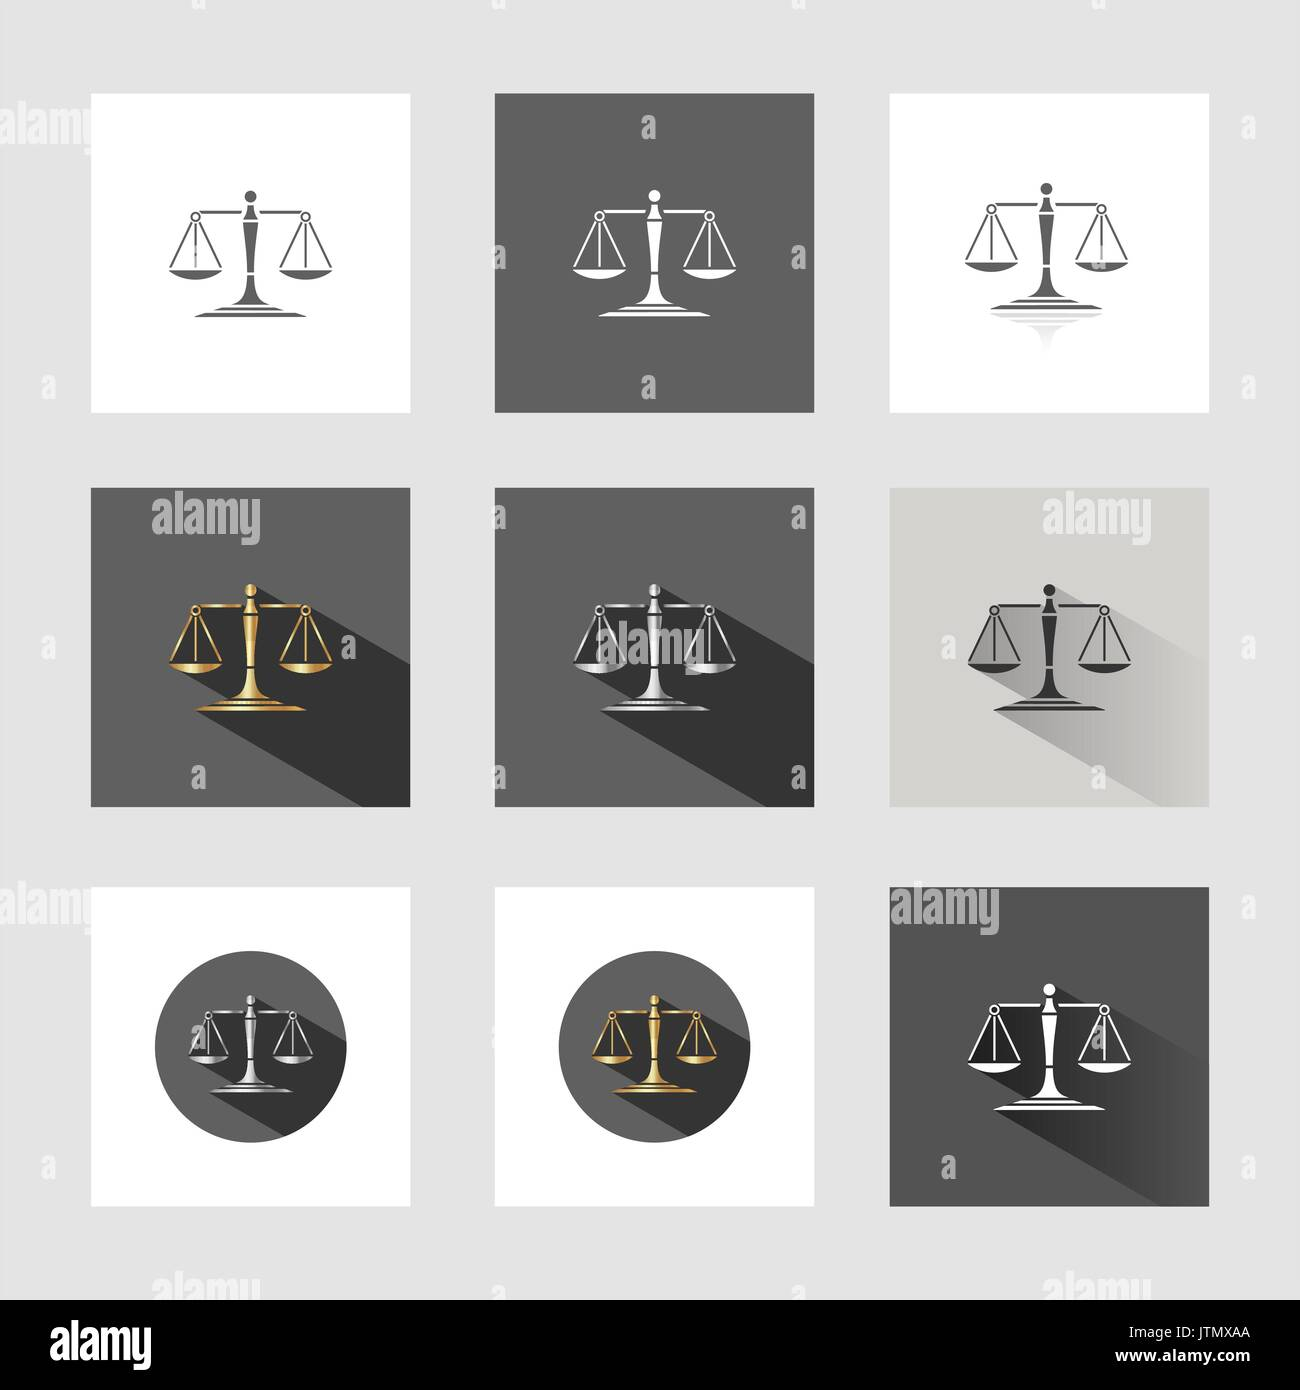 Scales of justice in different versions - Stock Vector